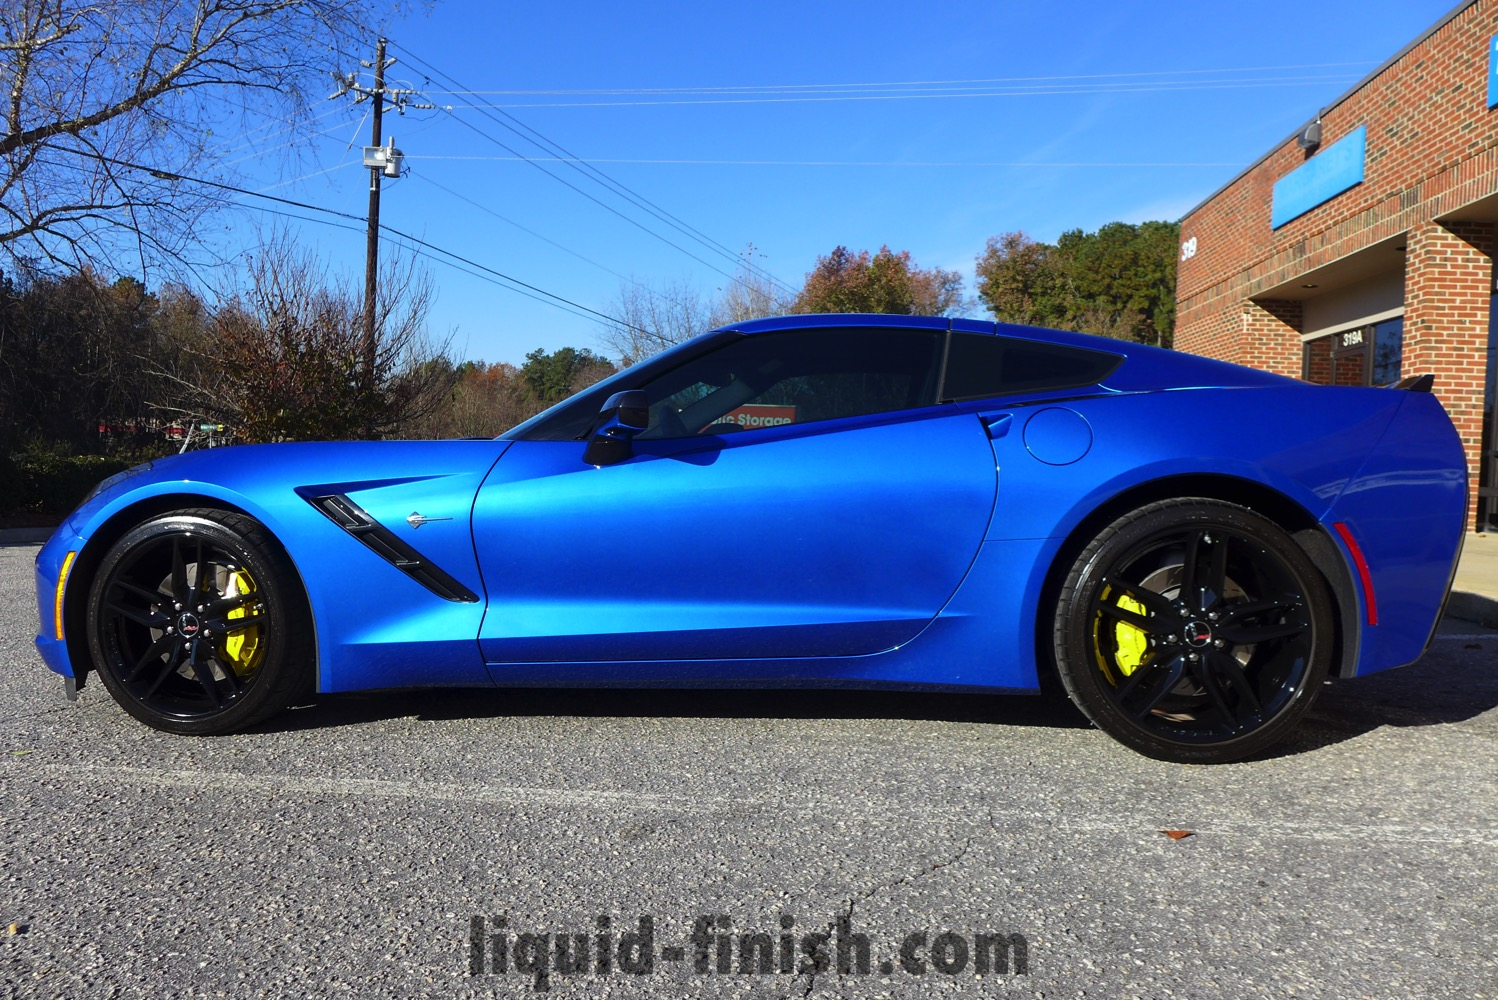 2015 Stingray Laguna Blue Paint Protection Film Amp Gloss Coat